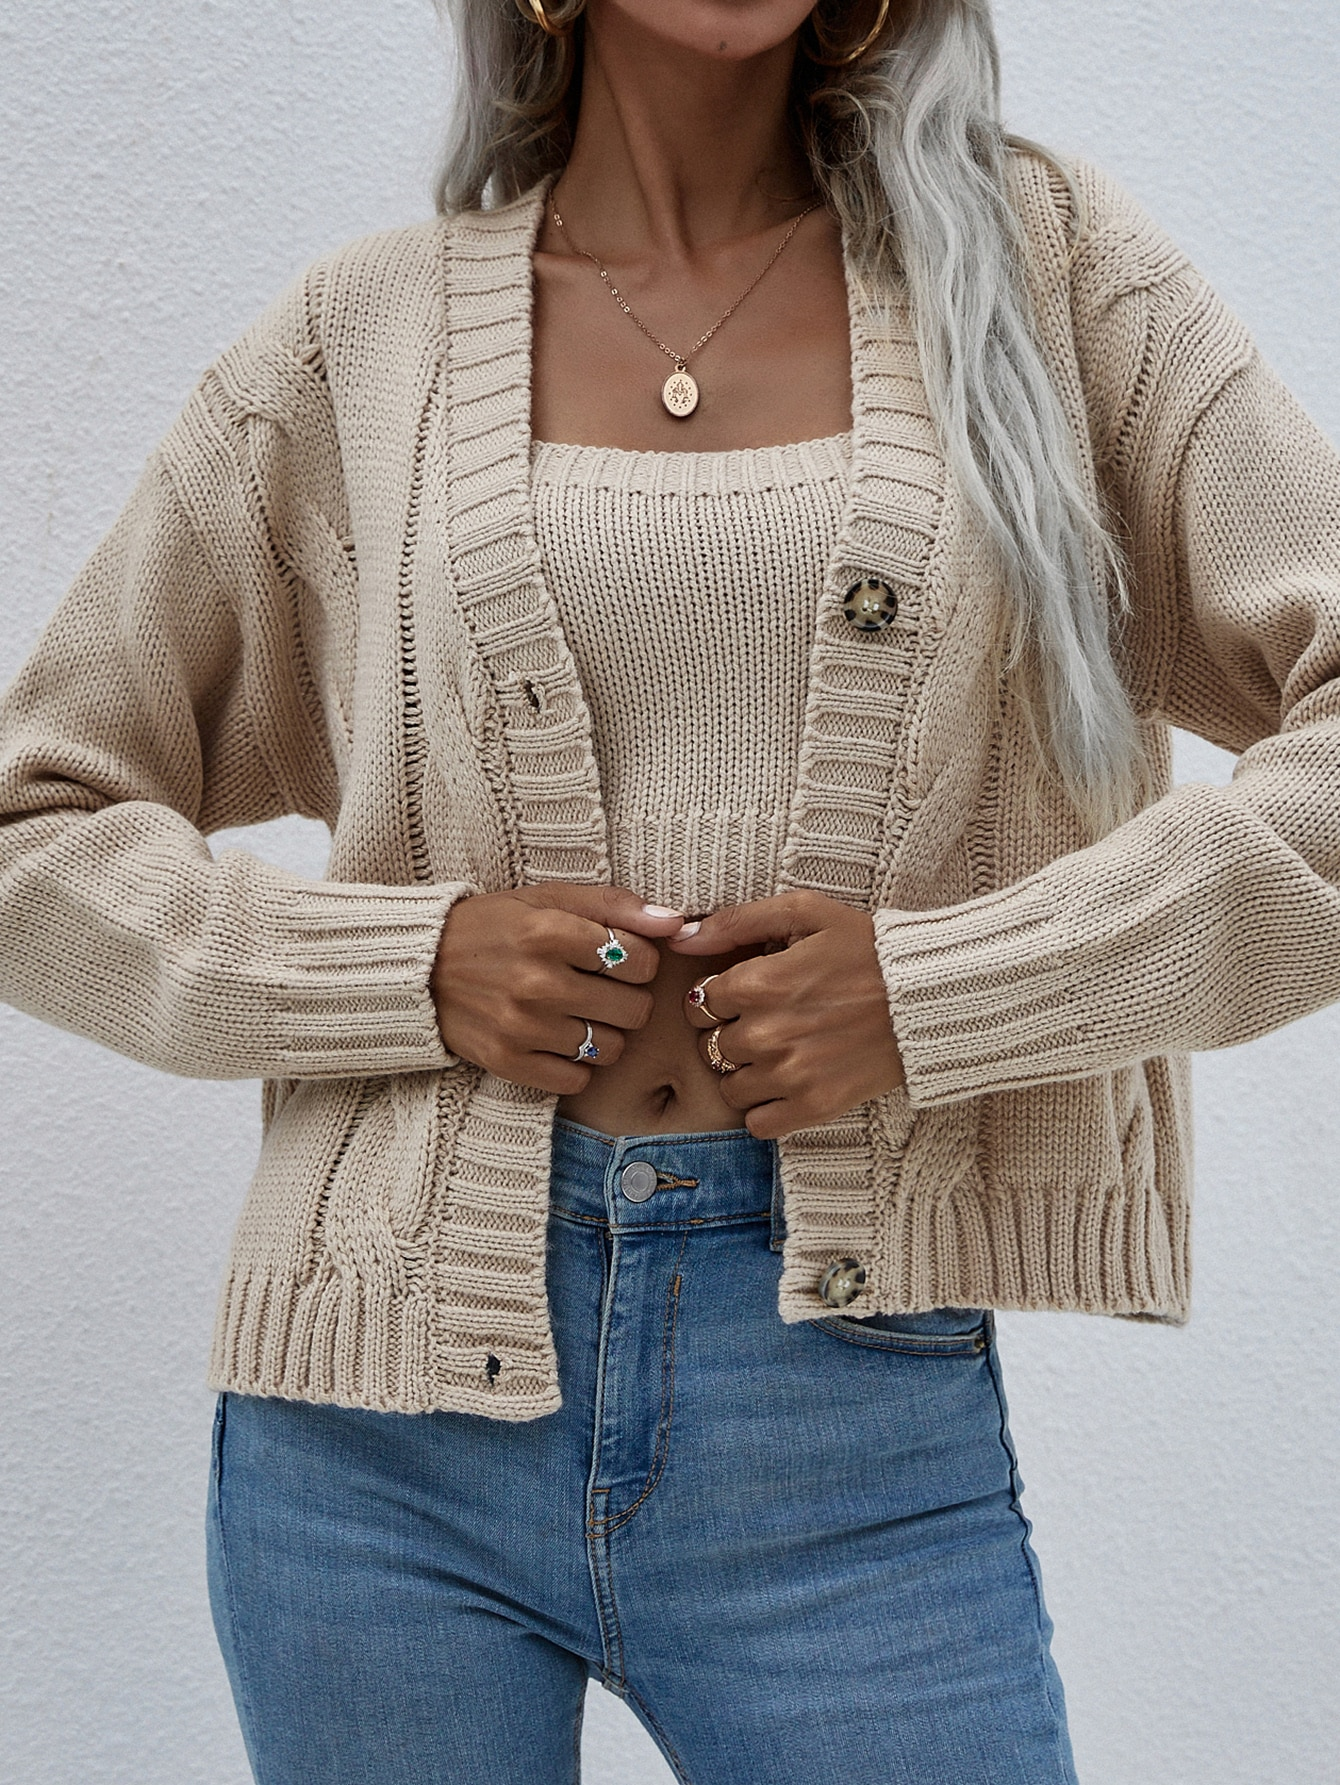 Woman Cardigan Knit Sweater Round Neck Solid Color European And American Jacket New Sweater Women Two-piece Suit enlarge